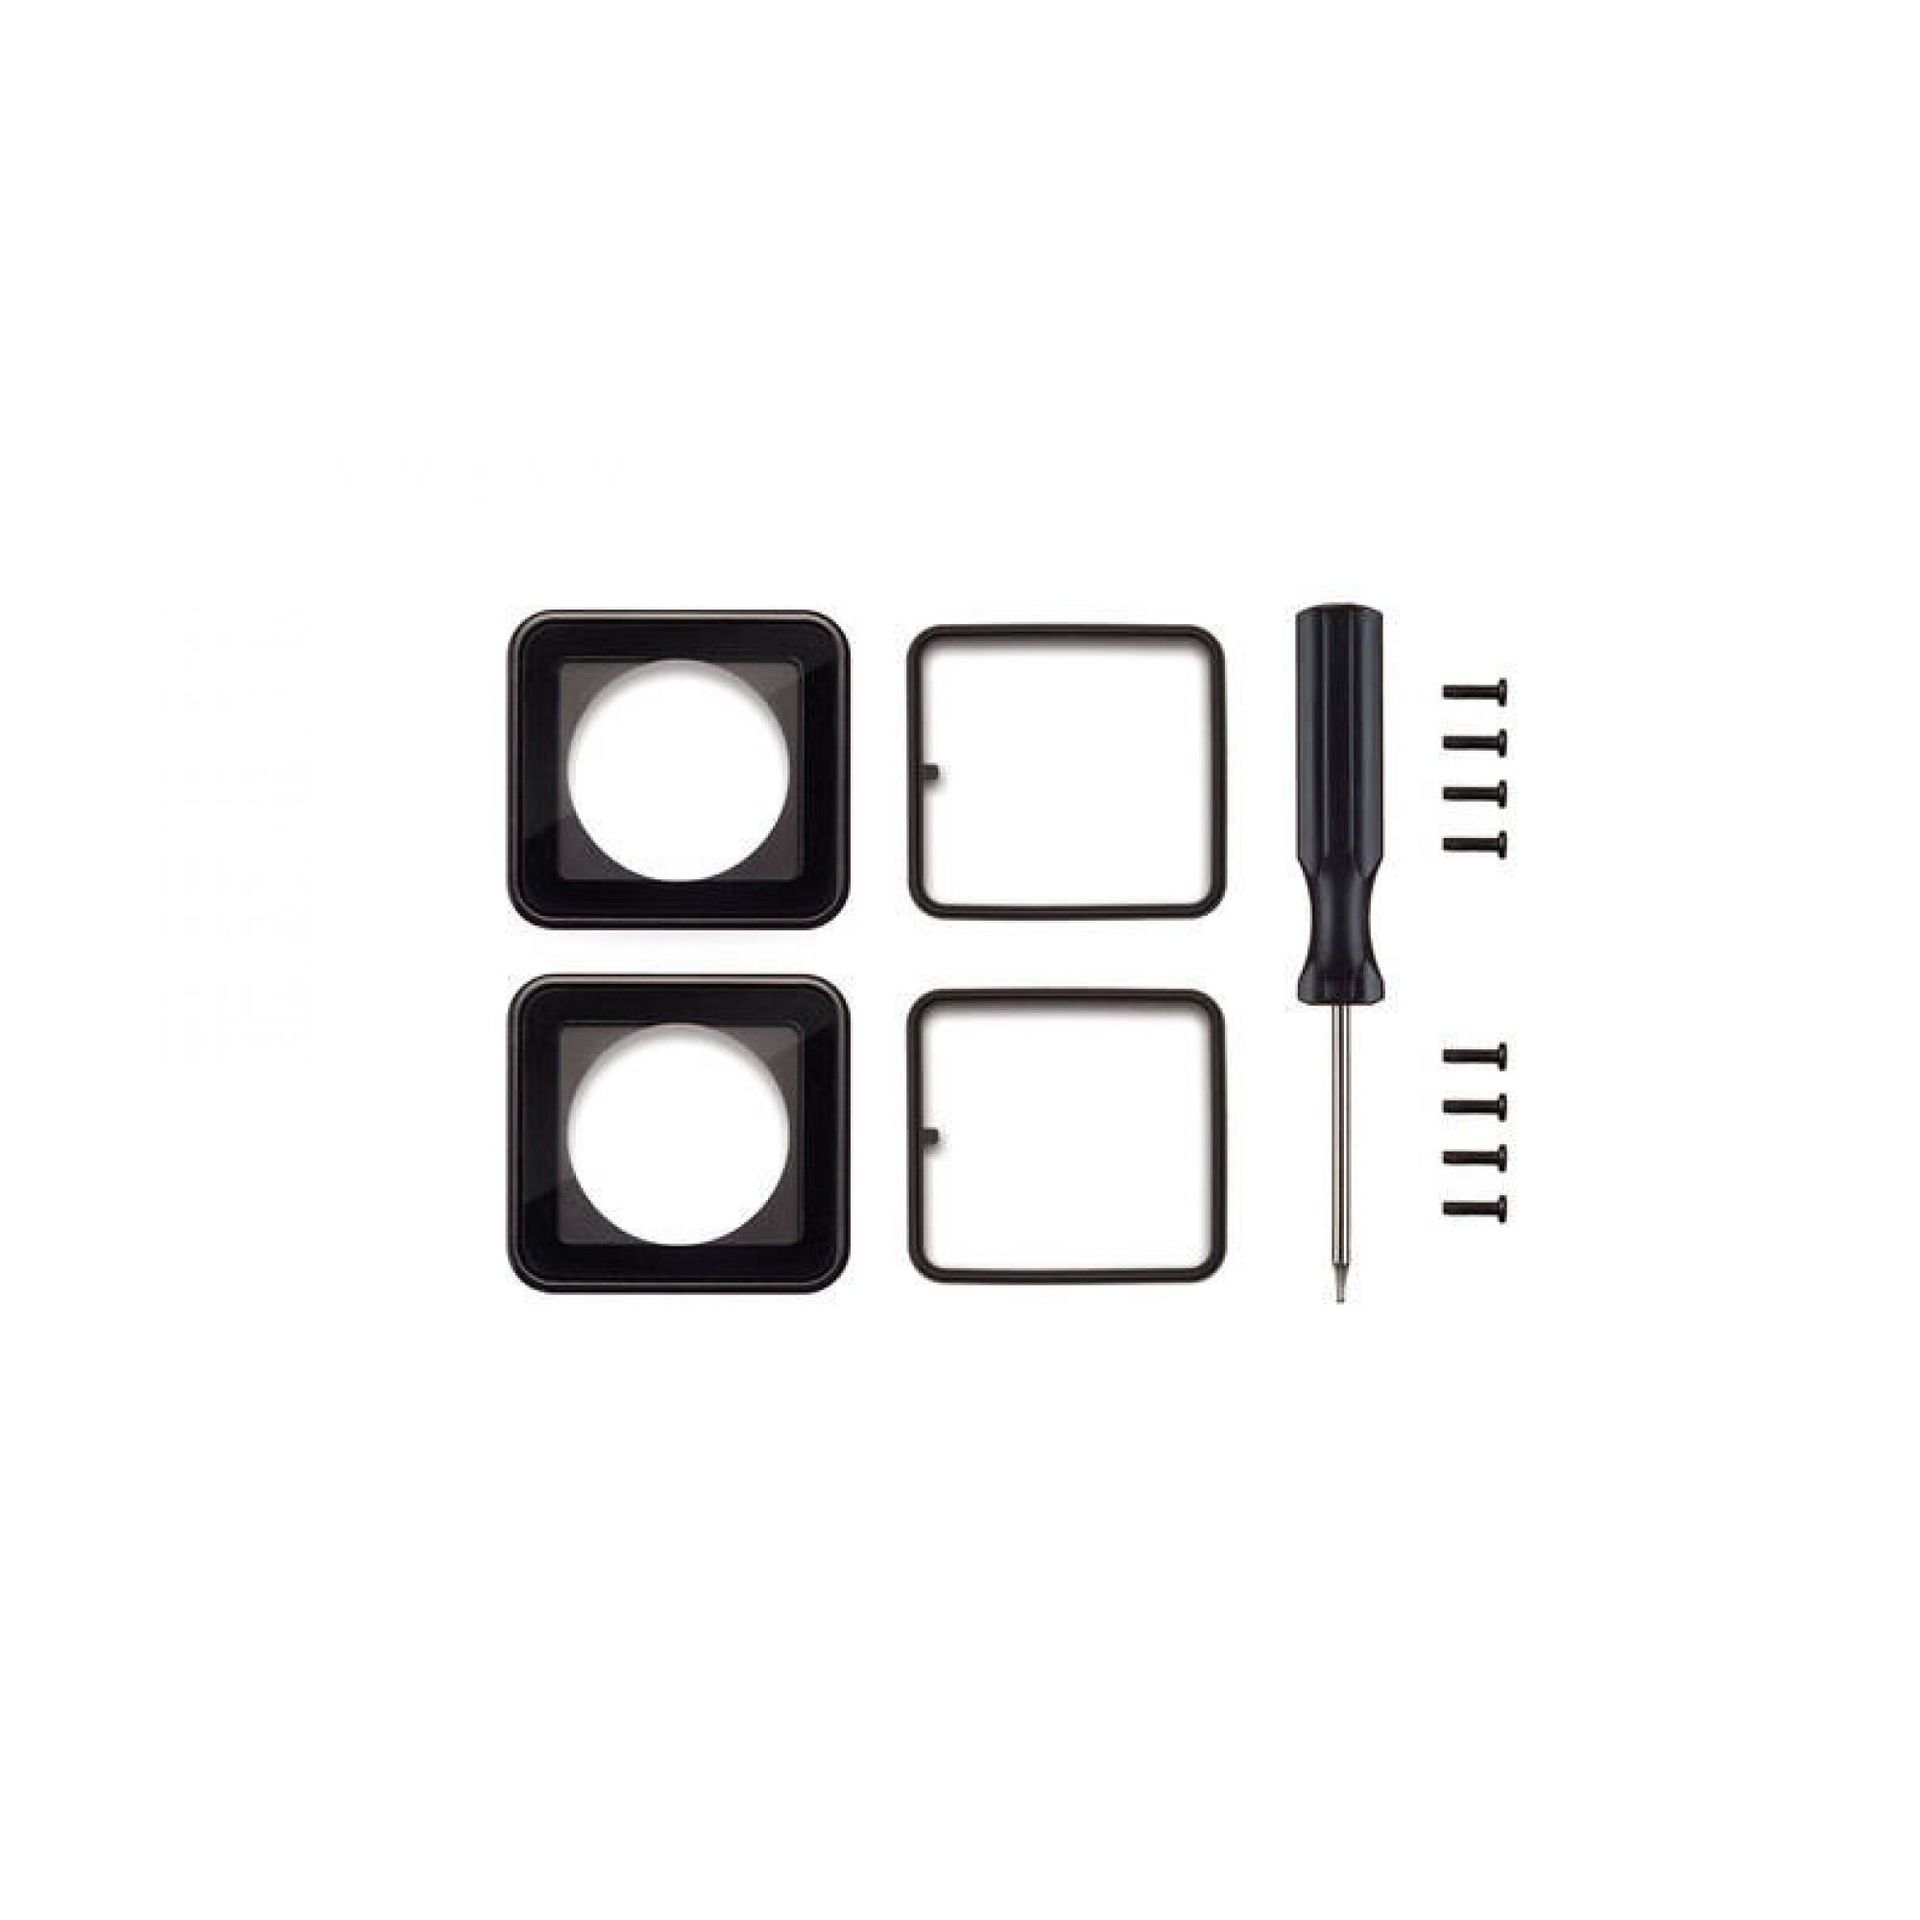 SOCZEWKI GOPRO STANDARD HOUSING LENS REPLACEMENT KIT ASLRK-301